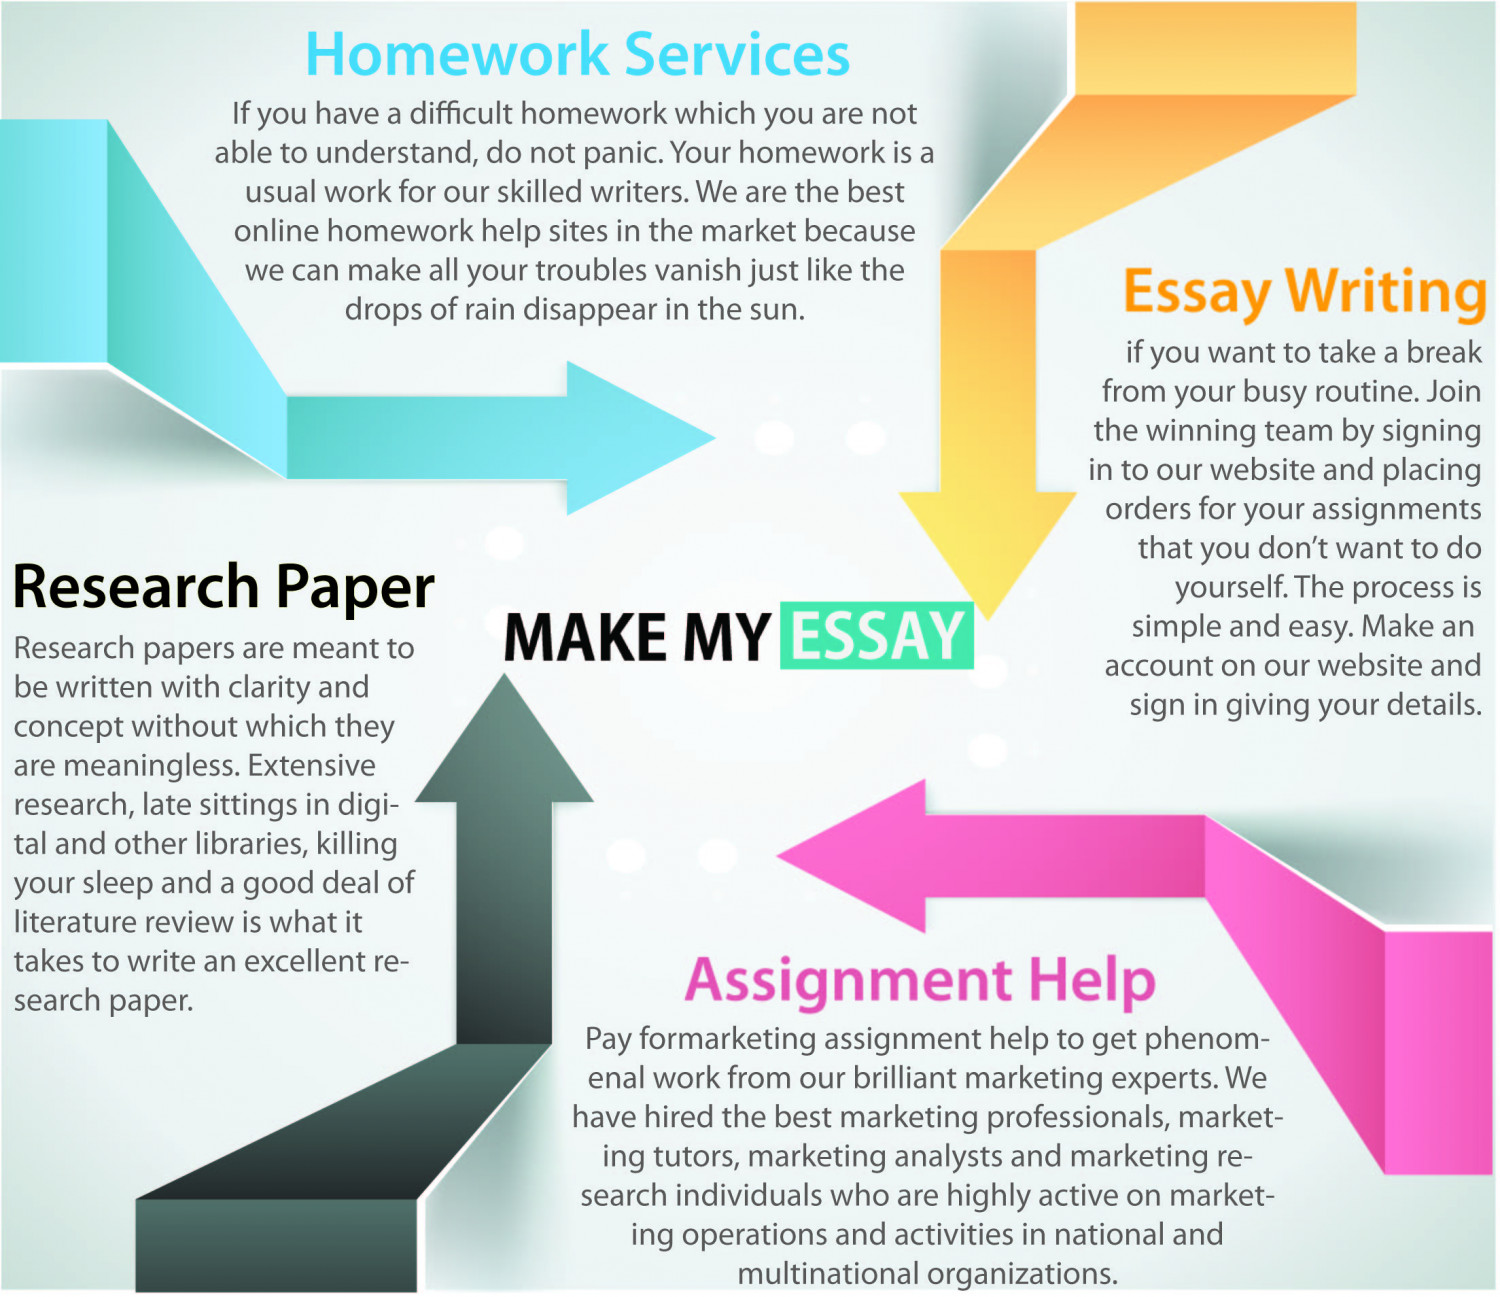 Narrative Essay Examples For High School We Know Who Can Write Top Quality Essays For You At Cheap Rates   Makemyessay Catcher In The Rye Essay Thesis also Informative Synthesis Essay We Know Who Can Write Top Quality Essays For You At Cheap Rates  Persuasive Essay Samples High School